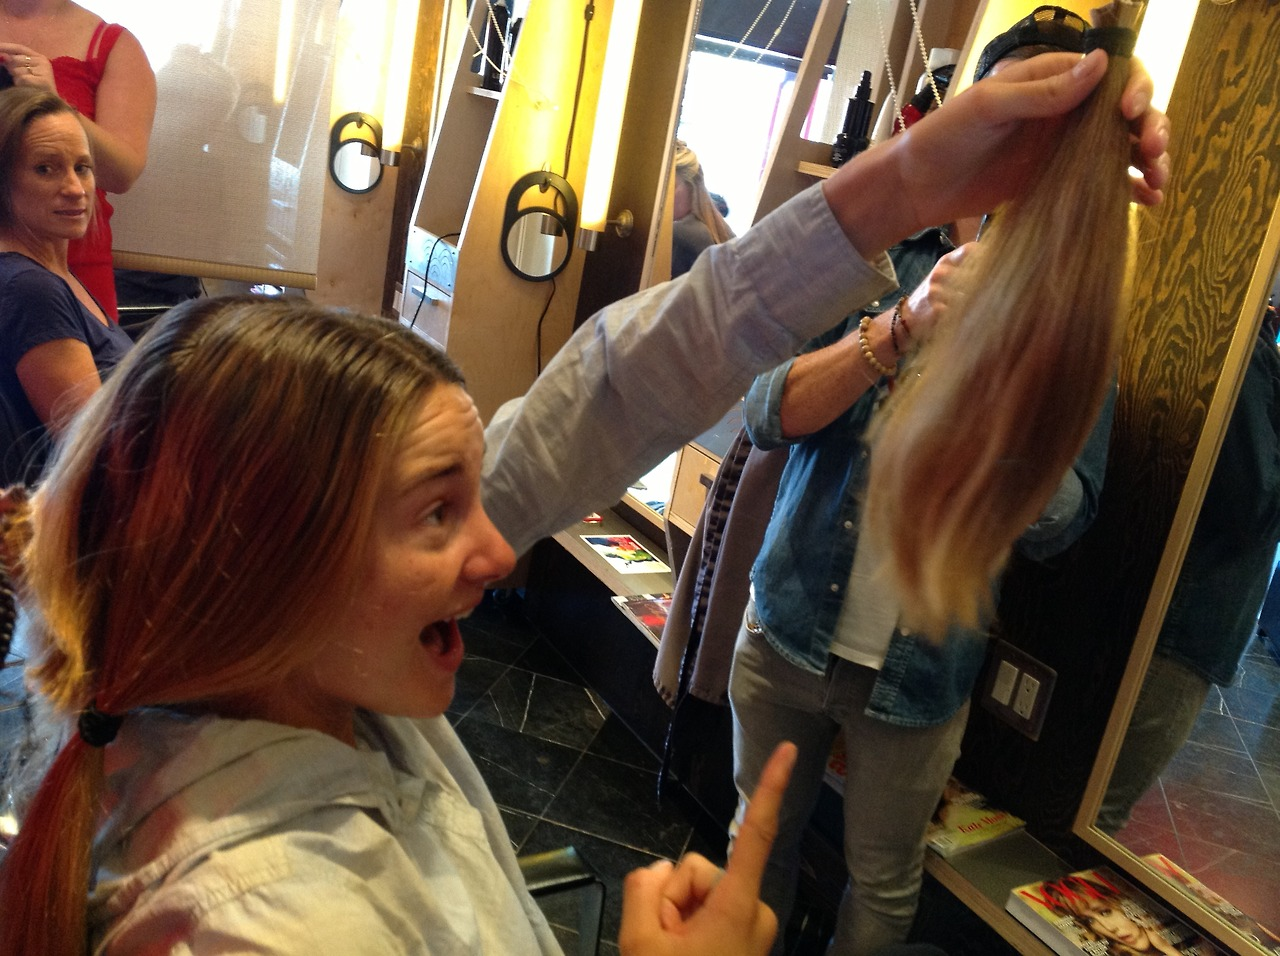 Shailene Woodley Cuts Her Hair Off for The Fault in Our Stars - The